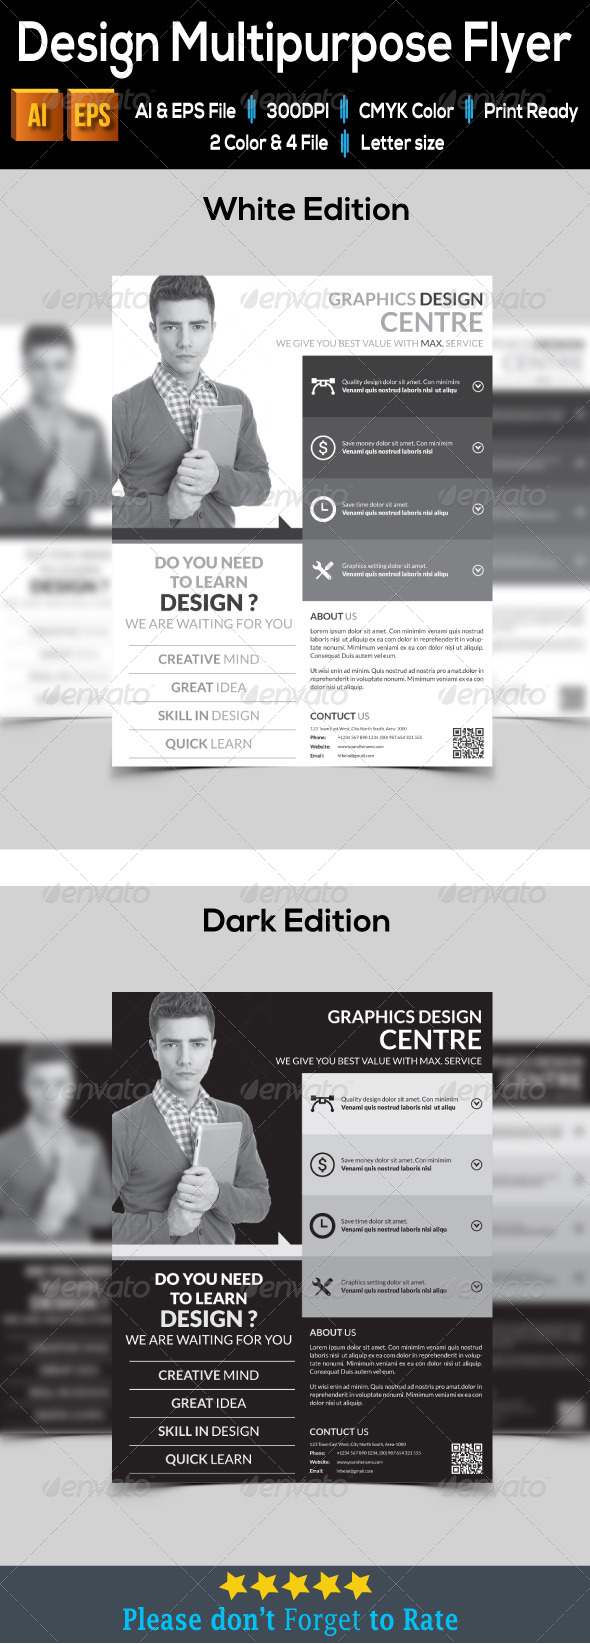 GraphicRiver Design Multipurpose Flyer 7969610